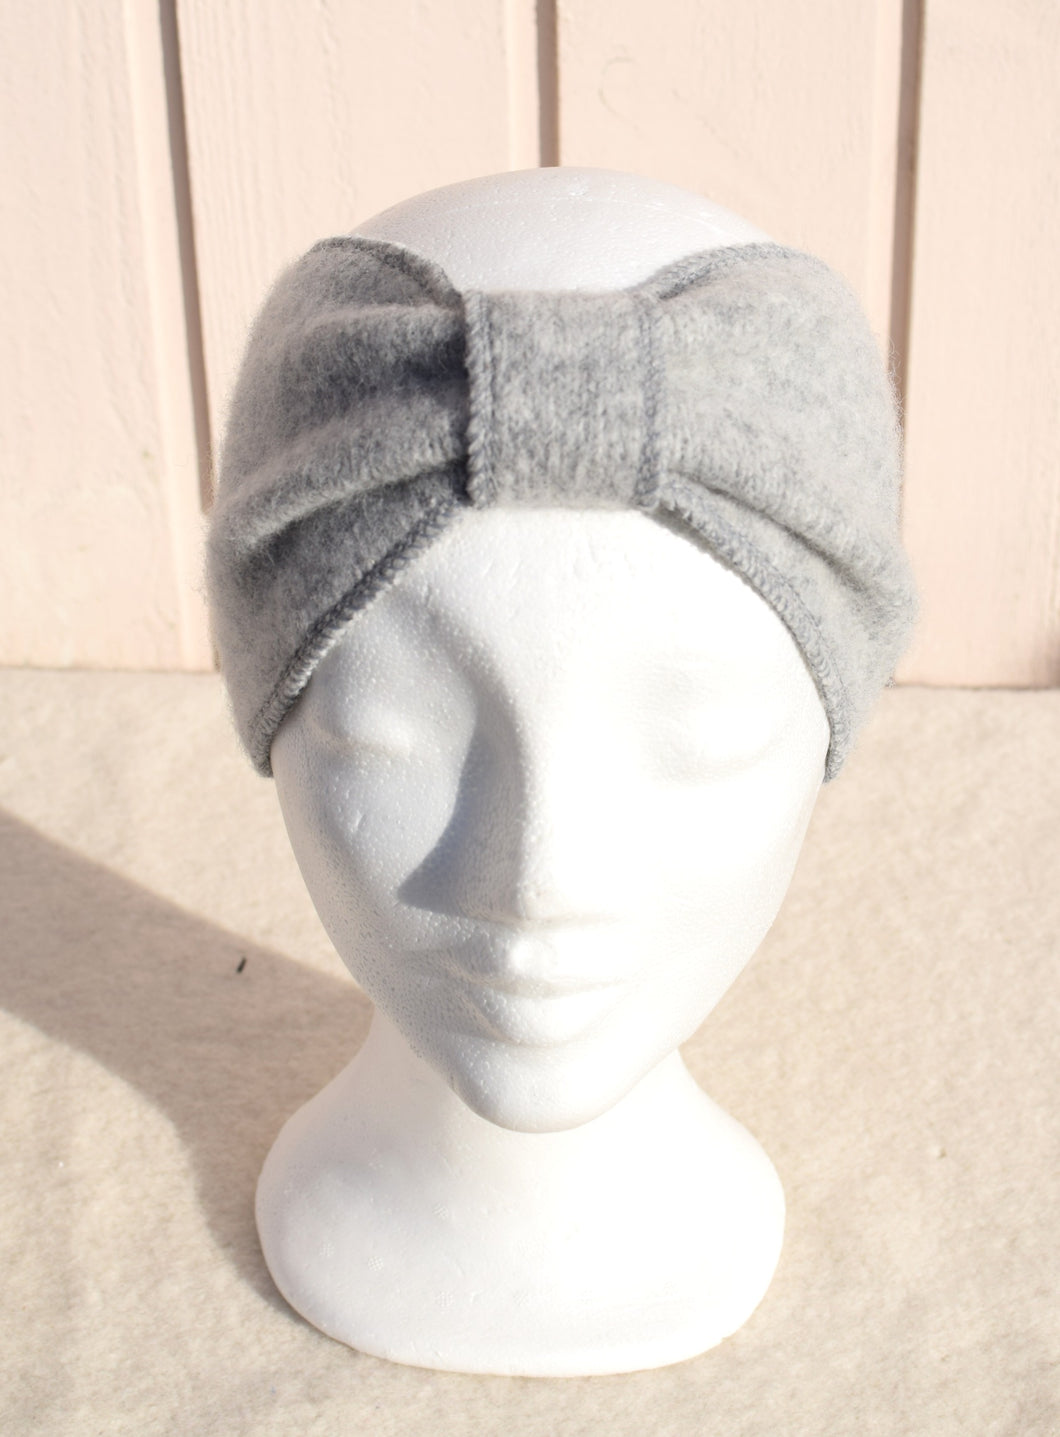 Headband with circle in the middle